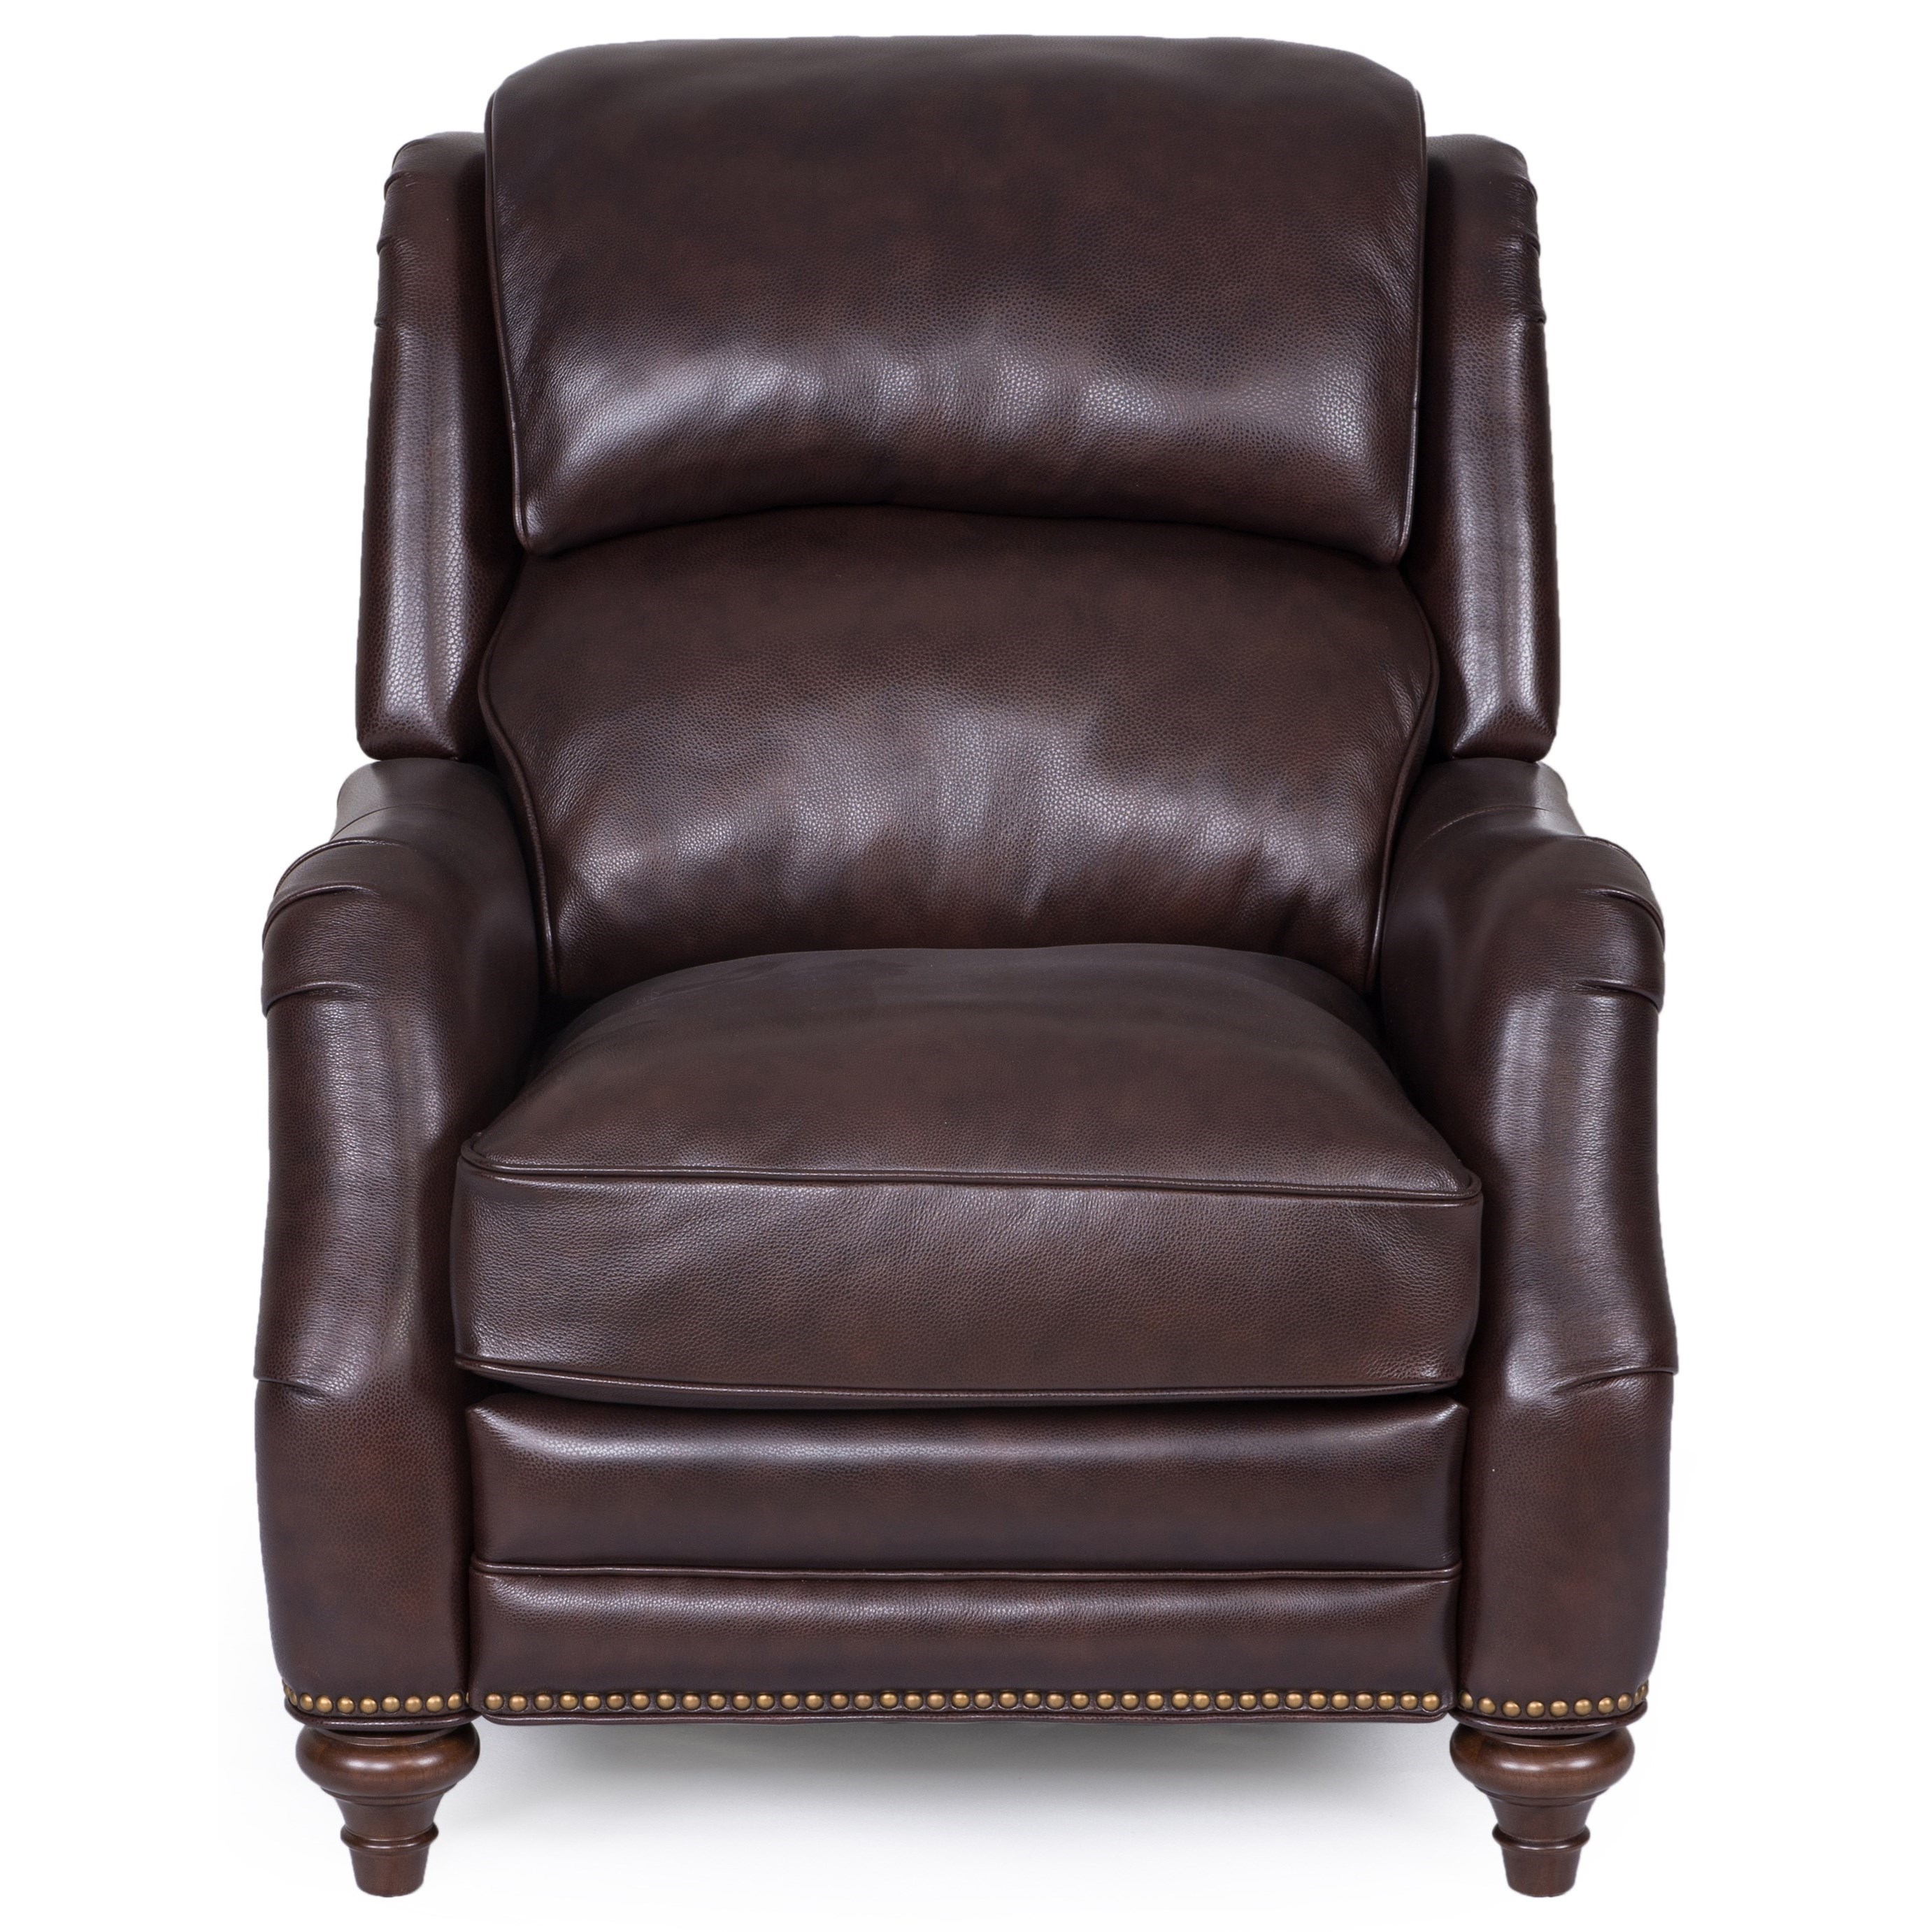 Sarah Randolph Designs 1368 Recliner - Item Number: 1368-86 9060-87